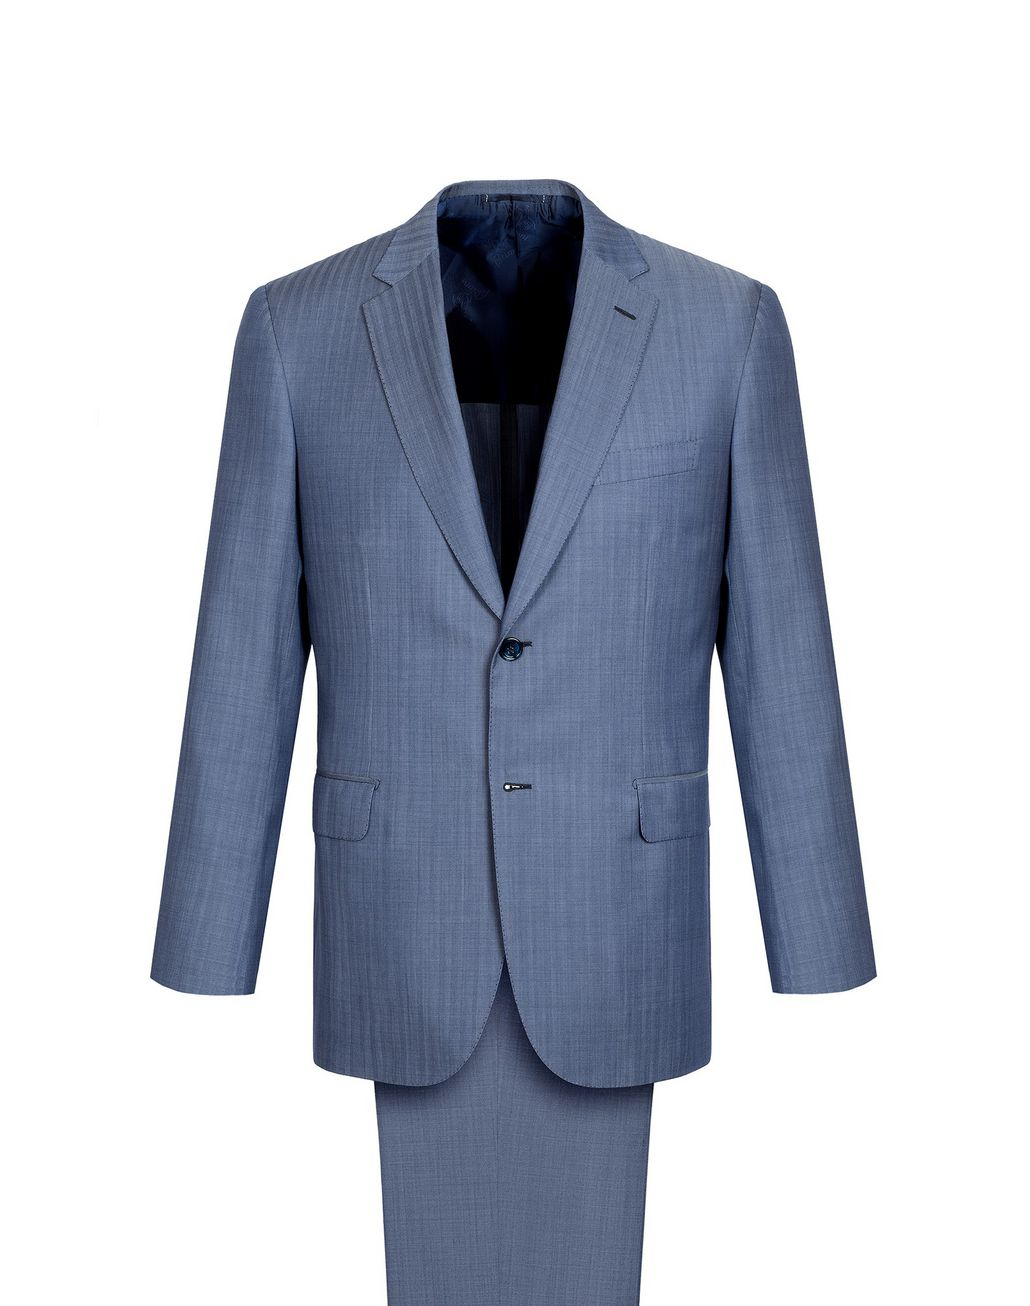 BRIONI Light Blue Micro-Herringbone Ravello Suit   Suits & Jackets Man f